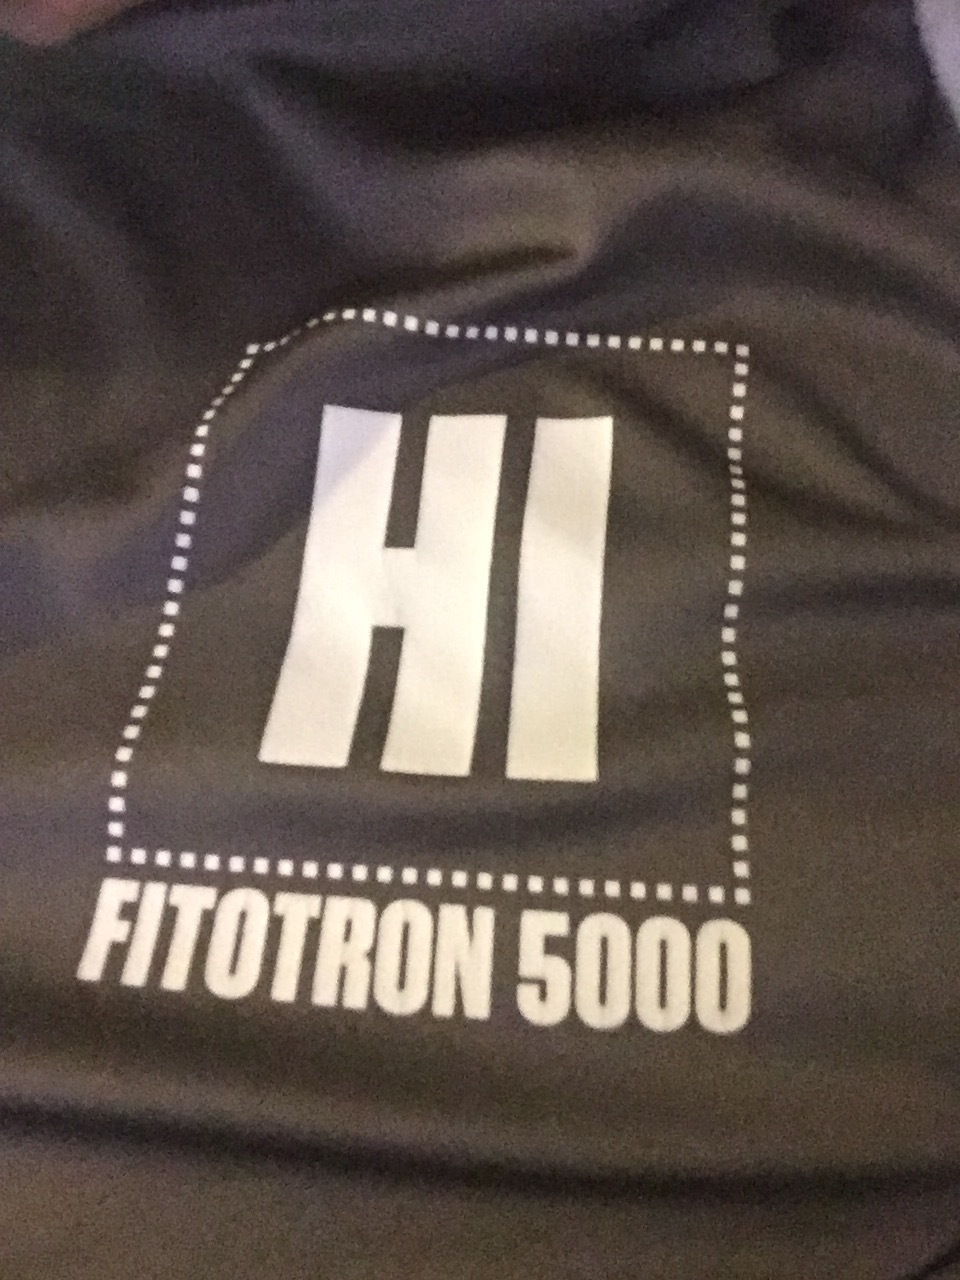 I didn't choose the fitotron lifestyle, the fitotron lifestyle chose me